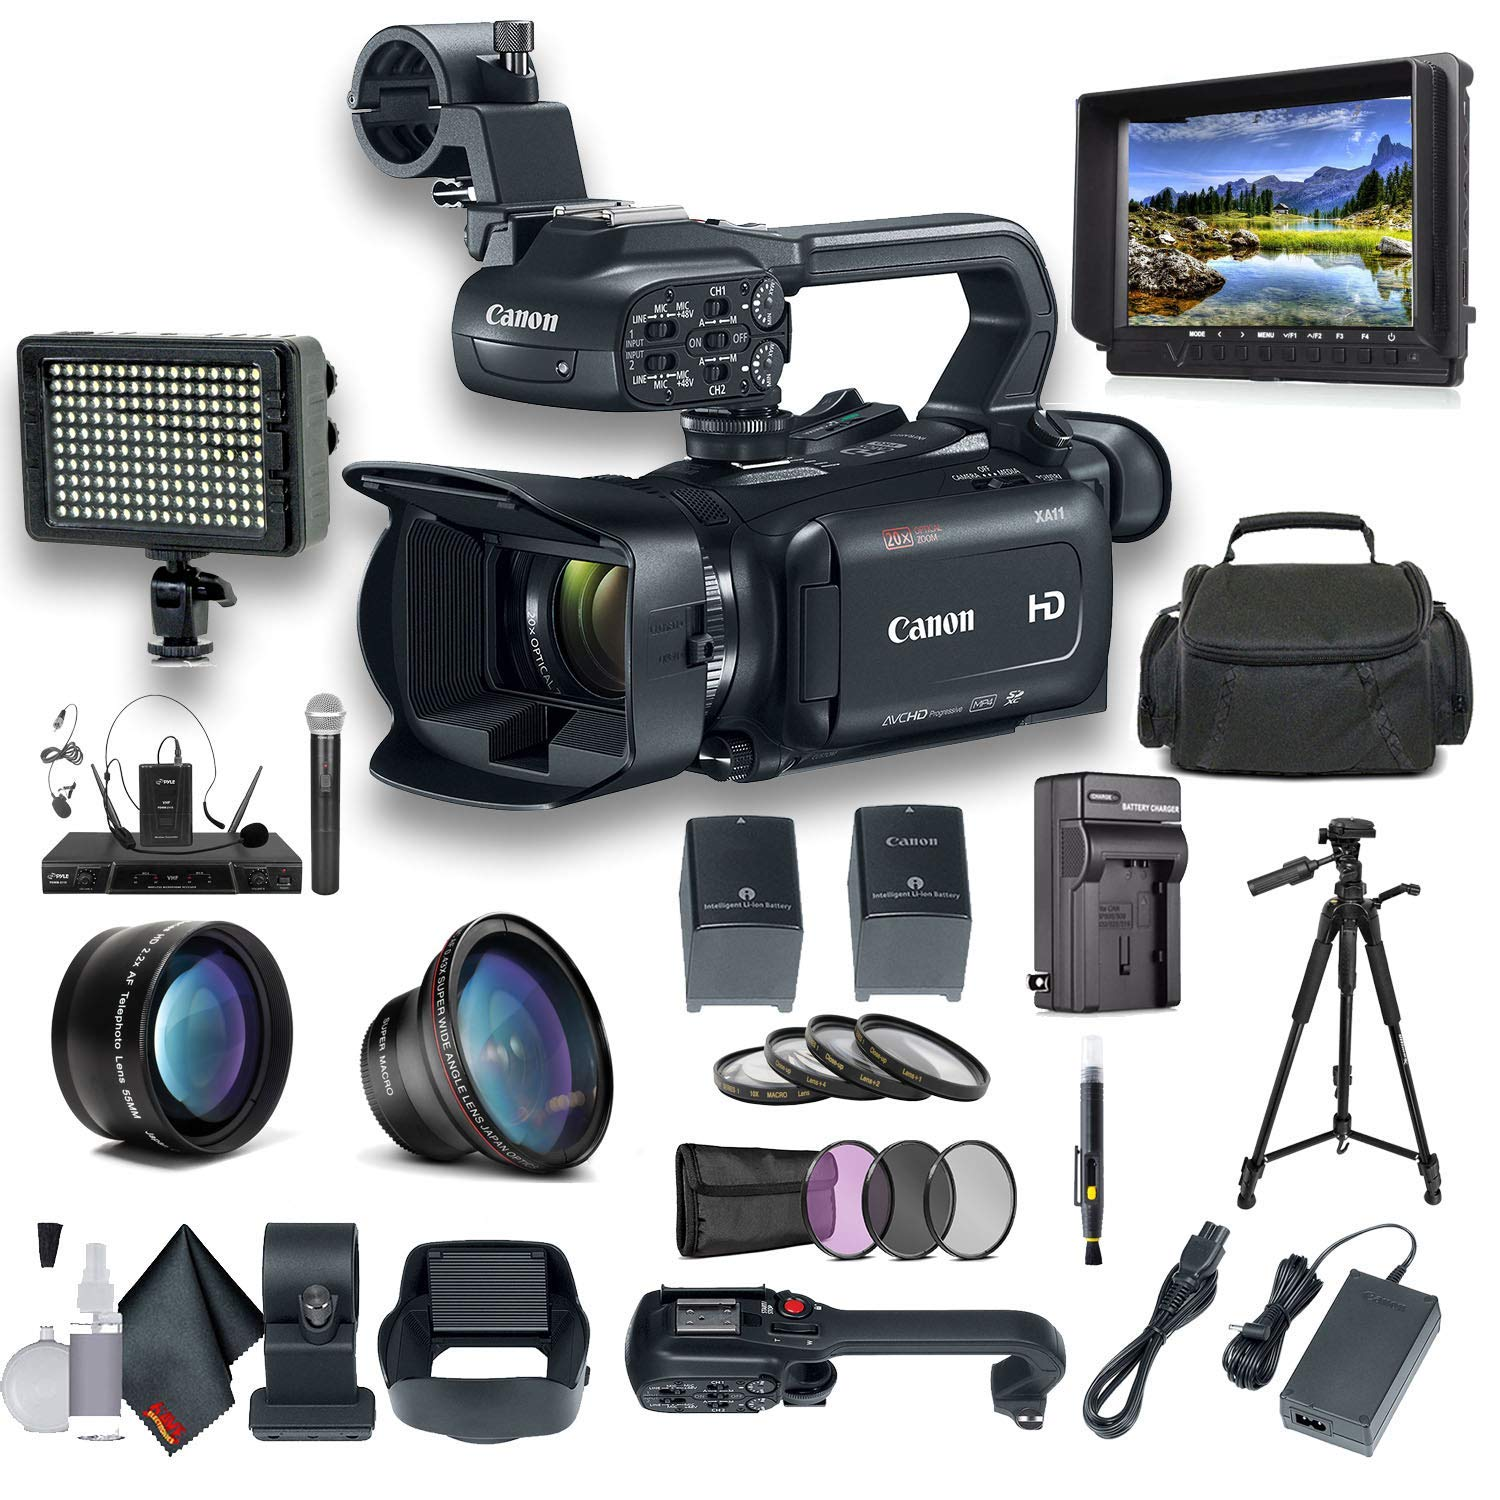 Canon XA11 Compact Full HD Camcorder with HDMI and Composite Output Professional Bundle. Includes Extra Battery, Case, LED Light, External Monitor, Mic, Tripod and More by Canon